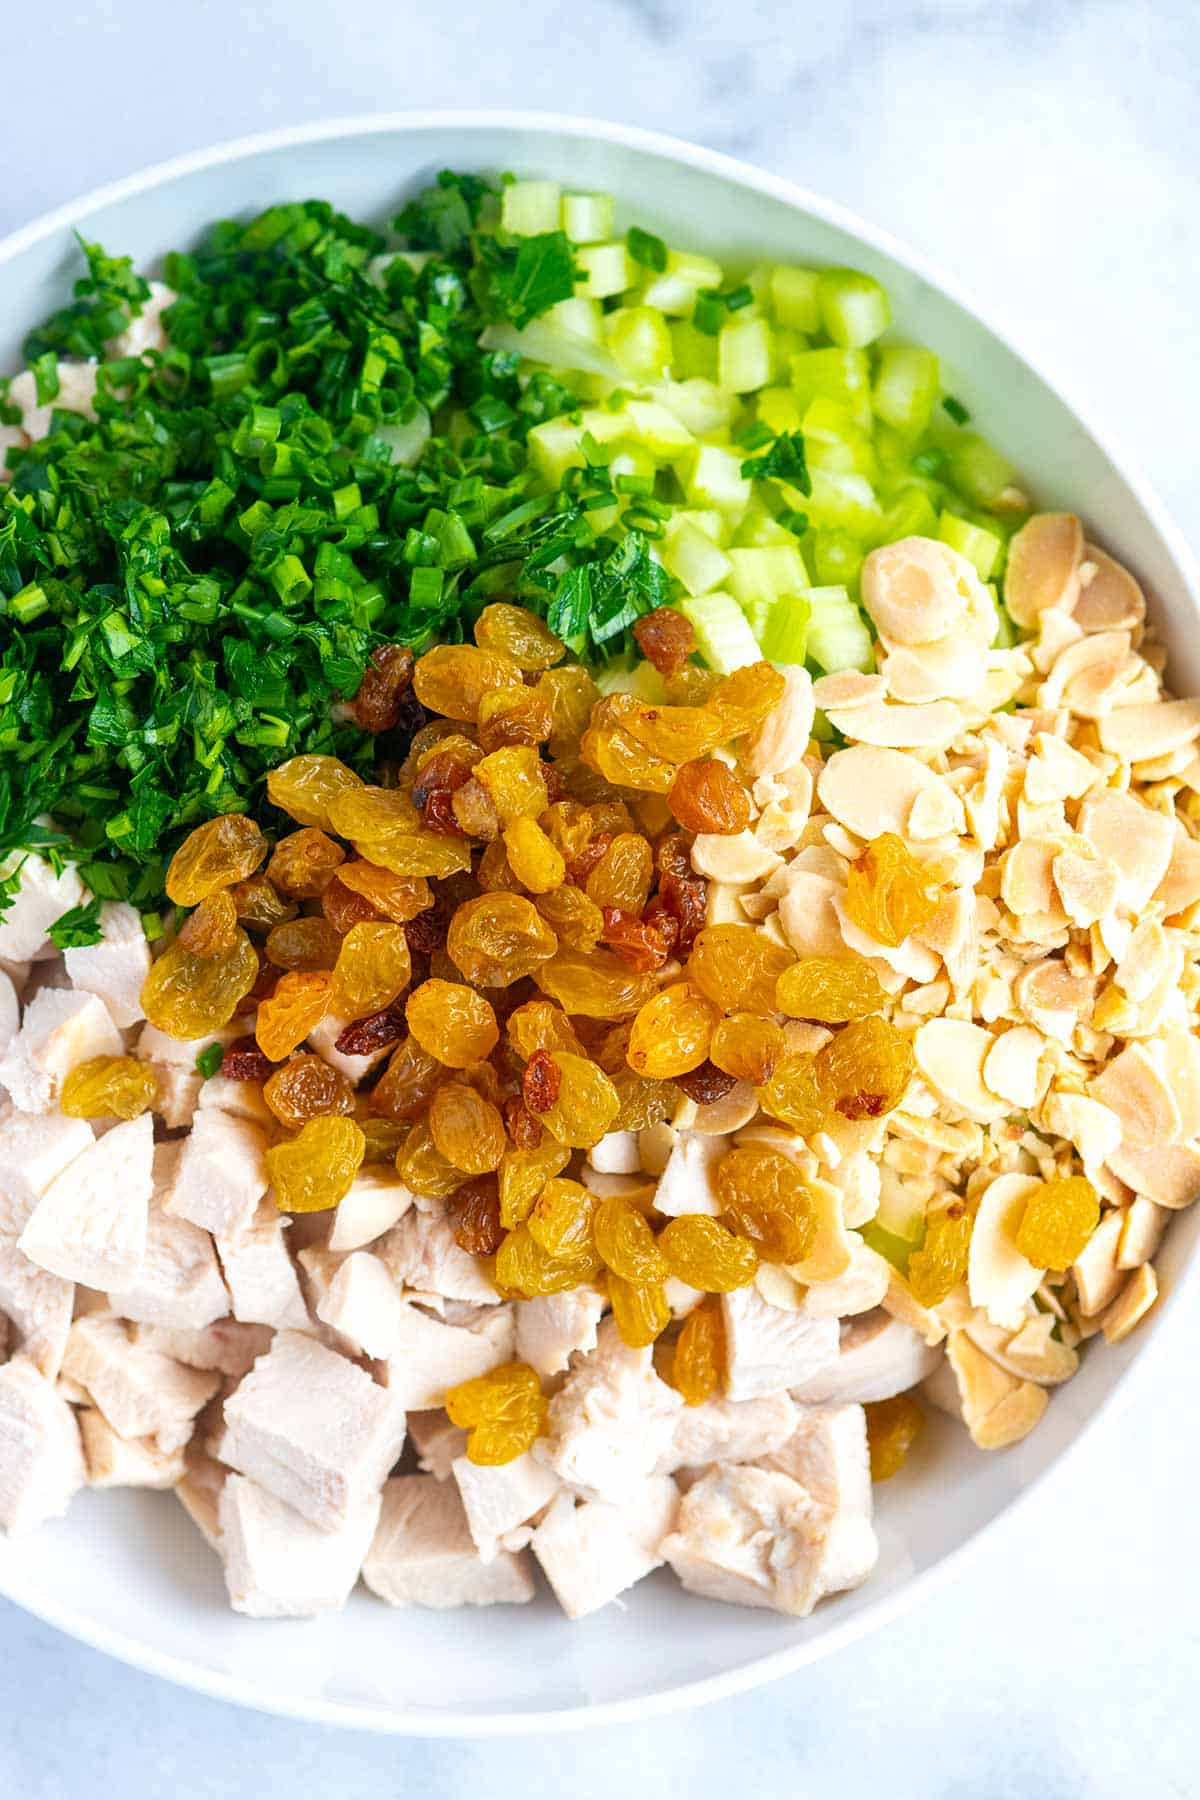 How to Make the Best Chicken Salad